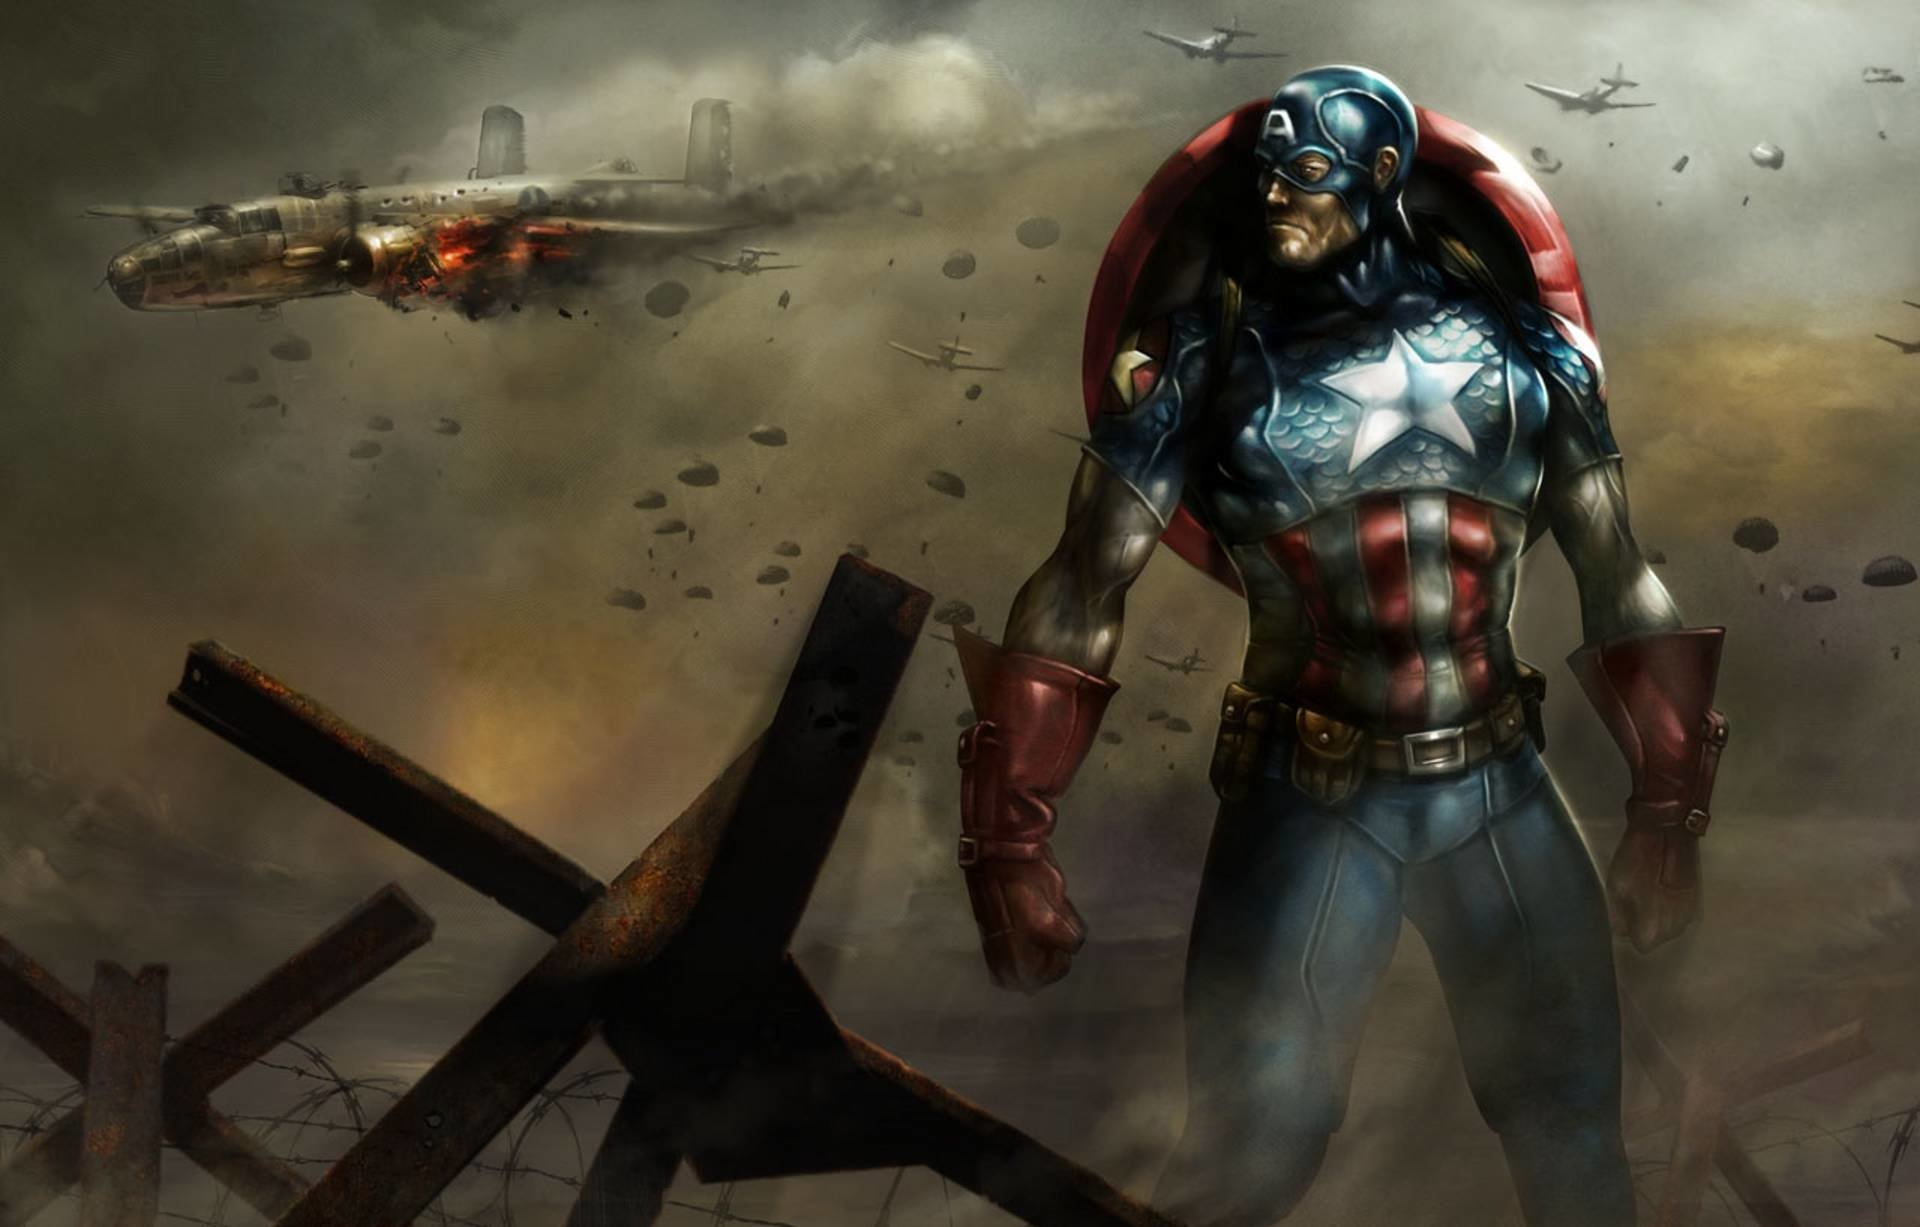 262 Captain America Hd Wallpapers Background Images Wallpaper